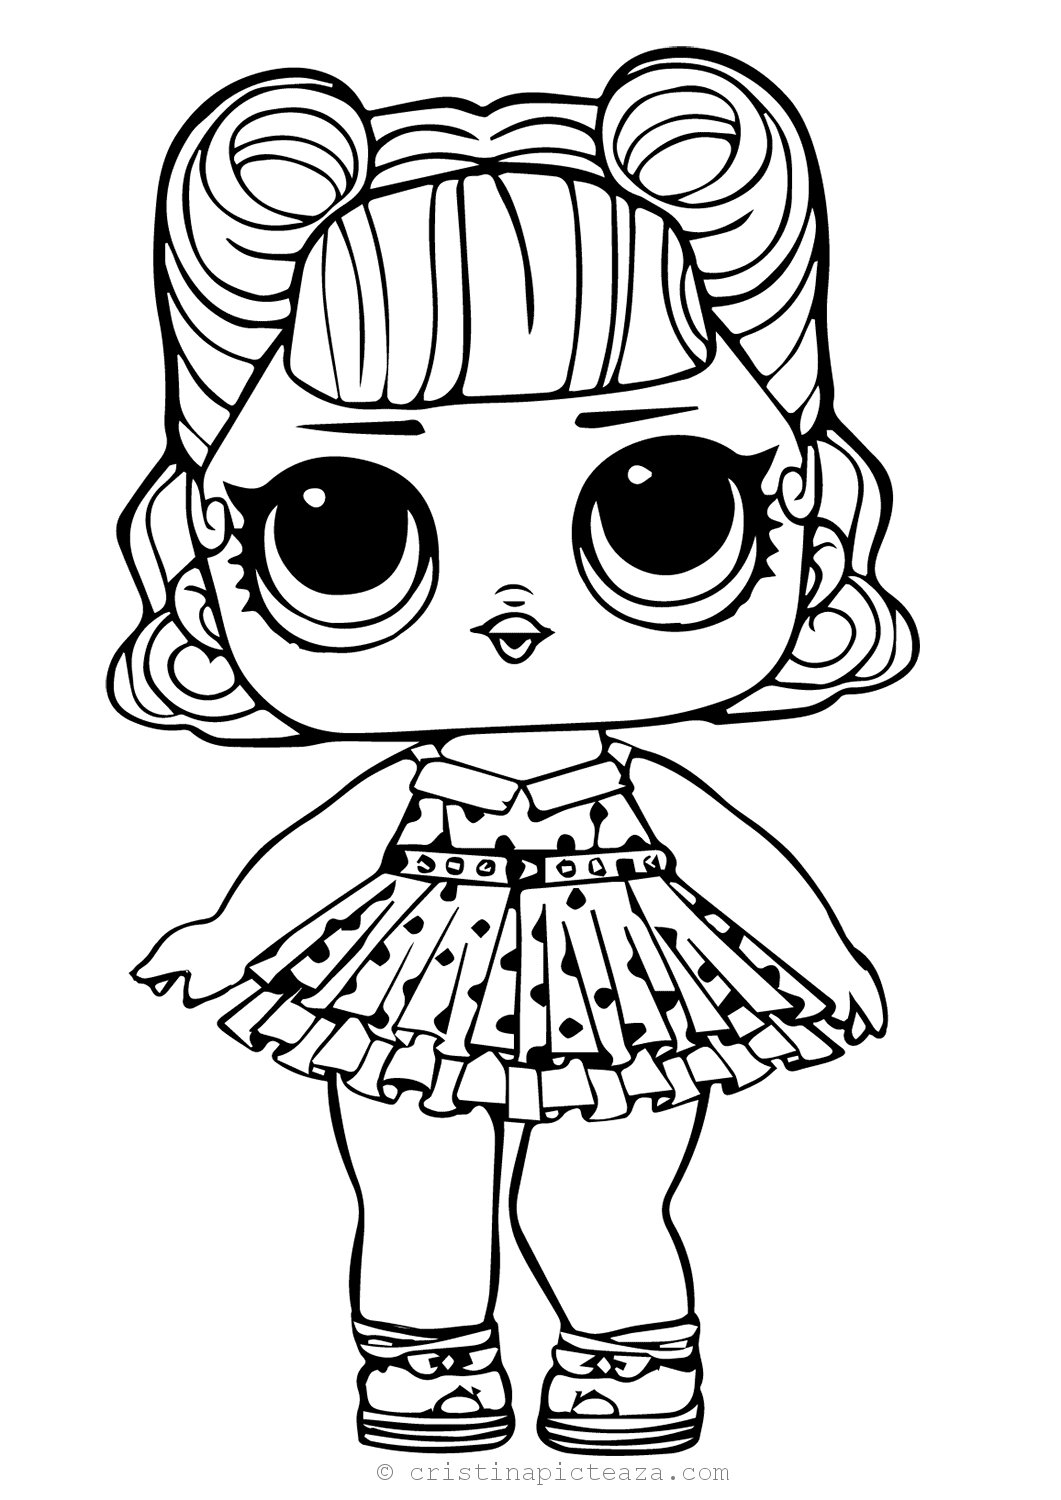 coloring images lol coloring pages of lol surprise dolls 80 pieces of black images coloring lol